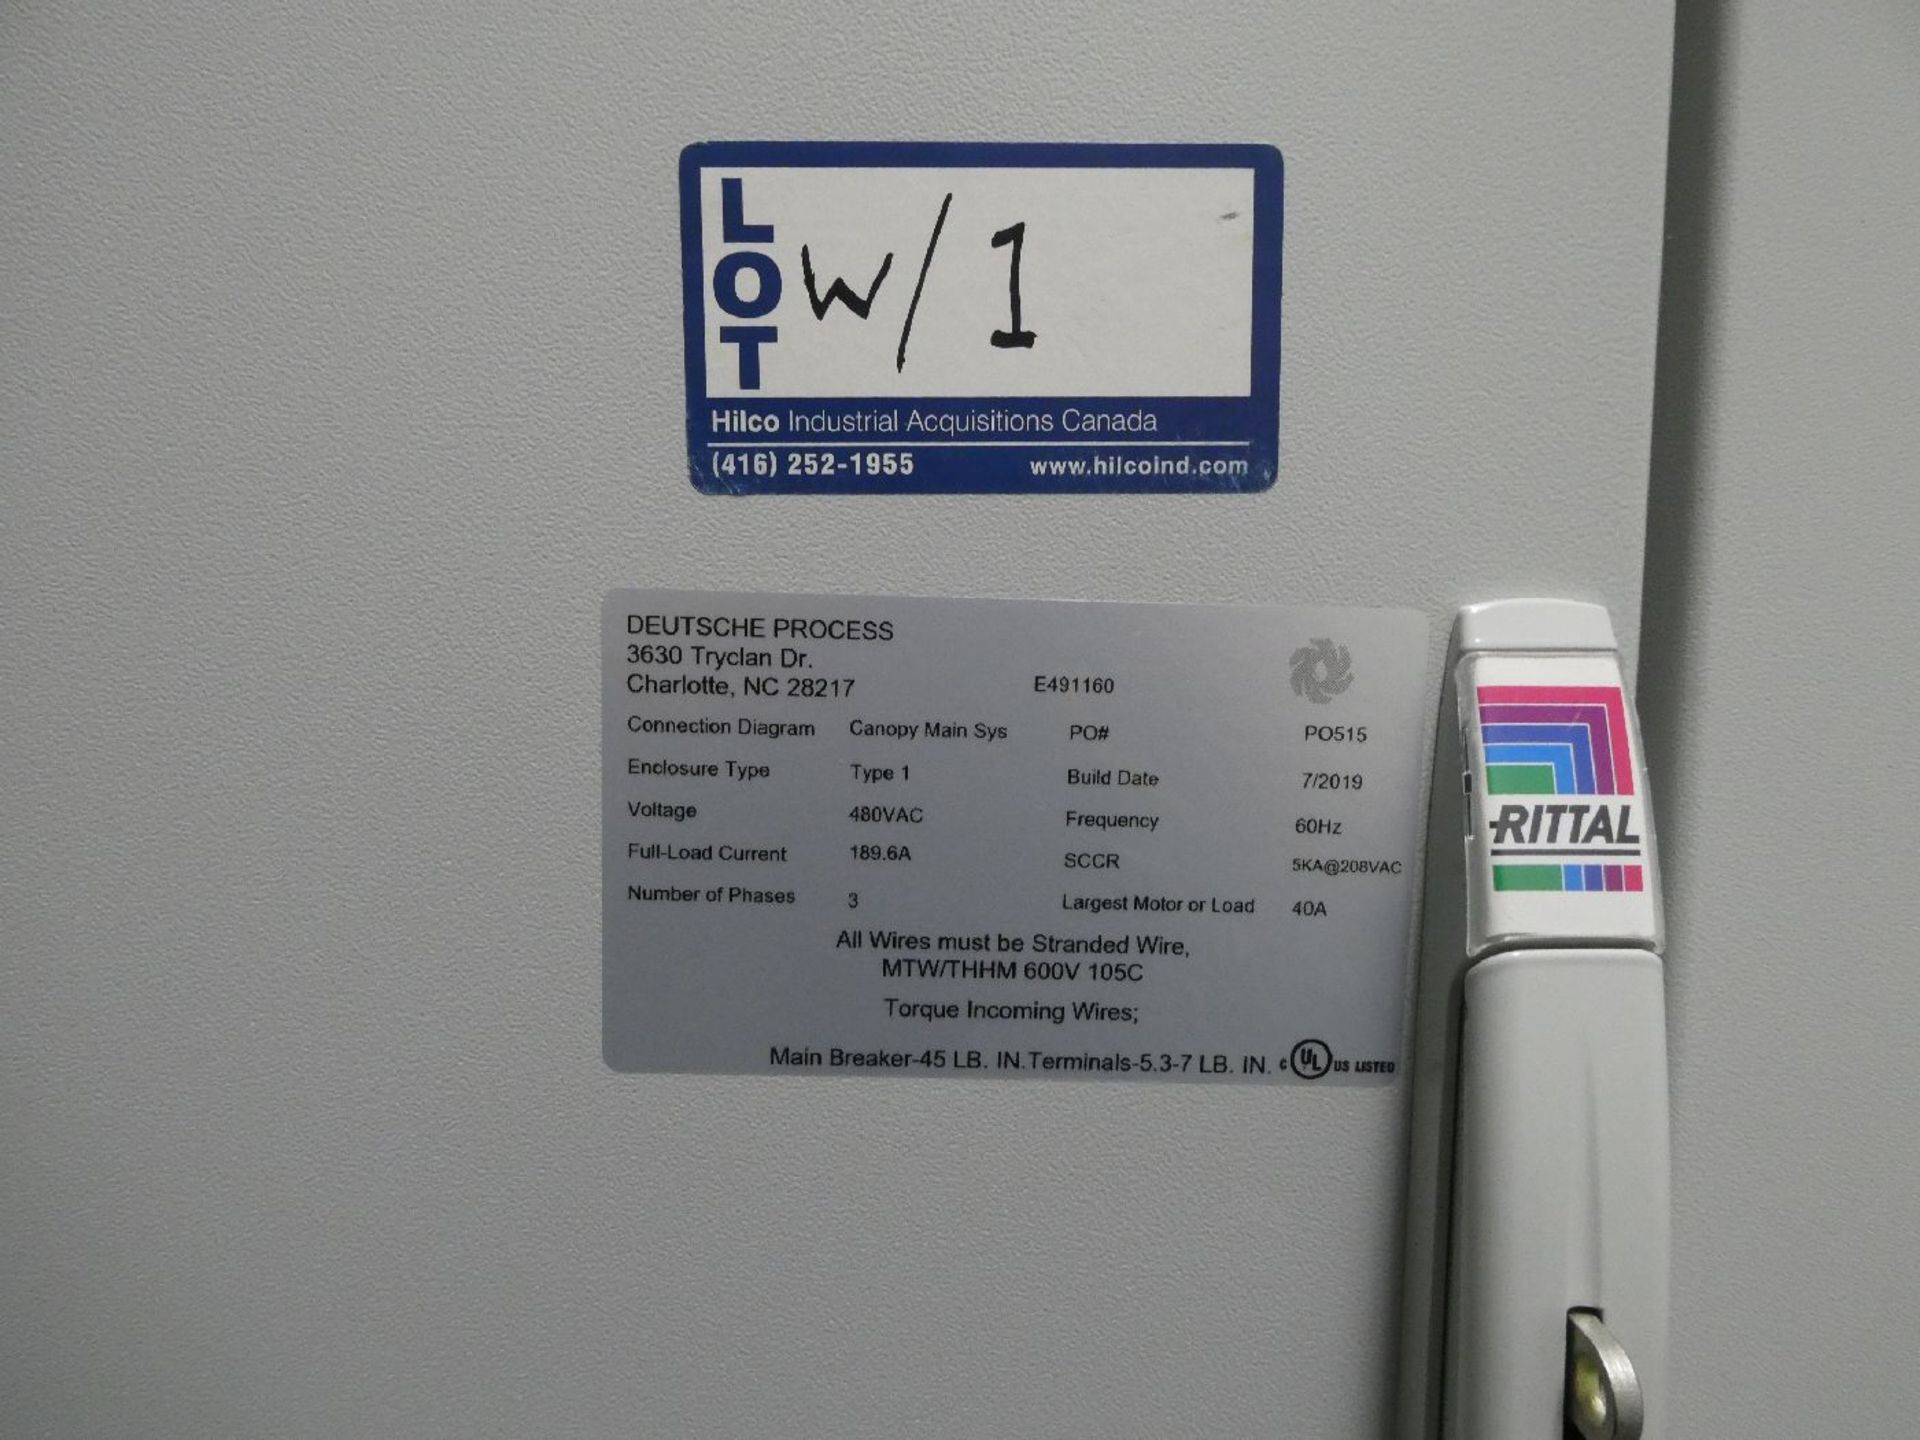 ROTAX Closed Loop Solvent Based Continuous Oil Extraction System - Image 53 of 68